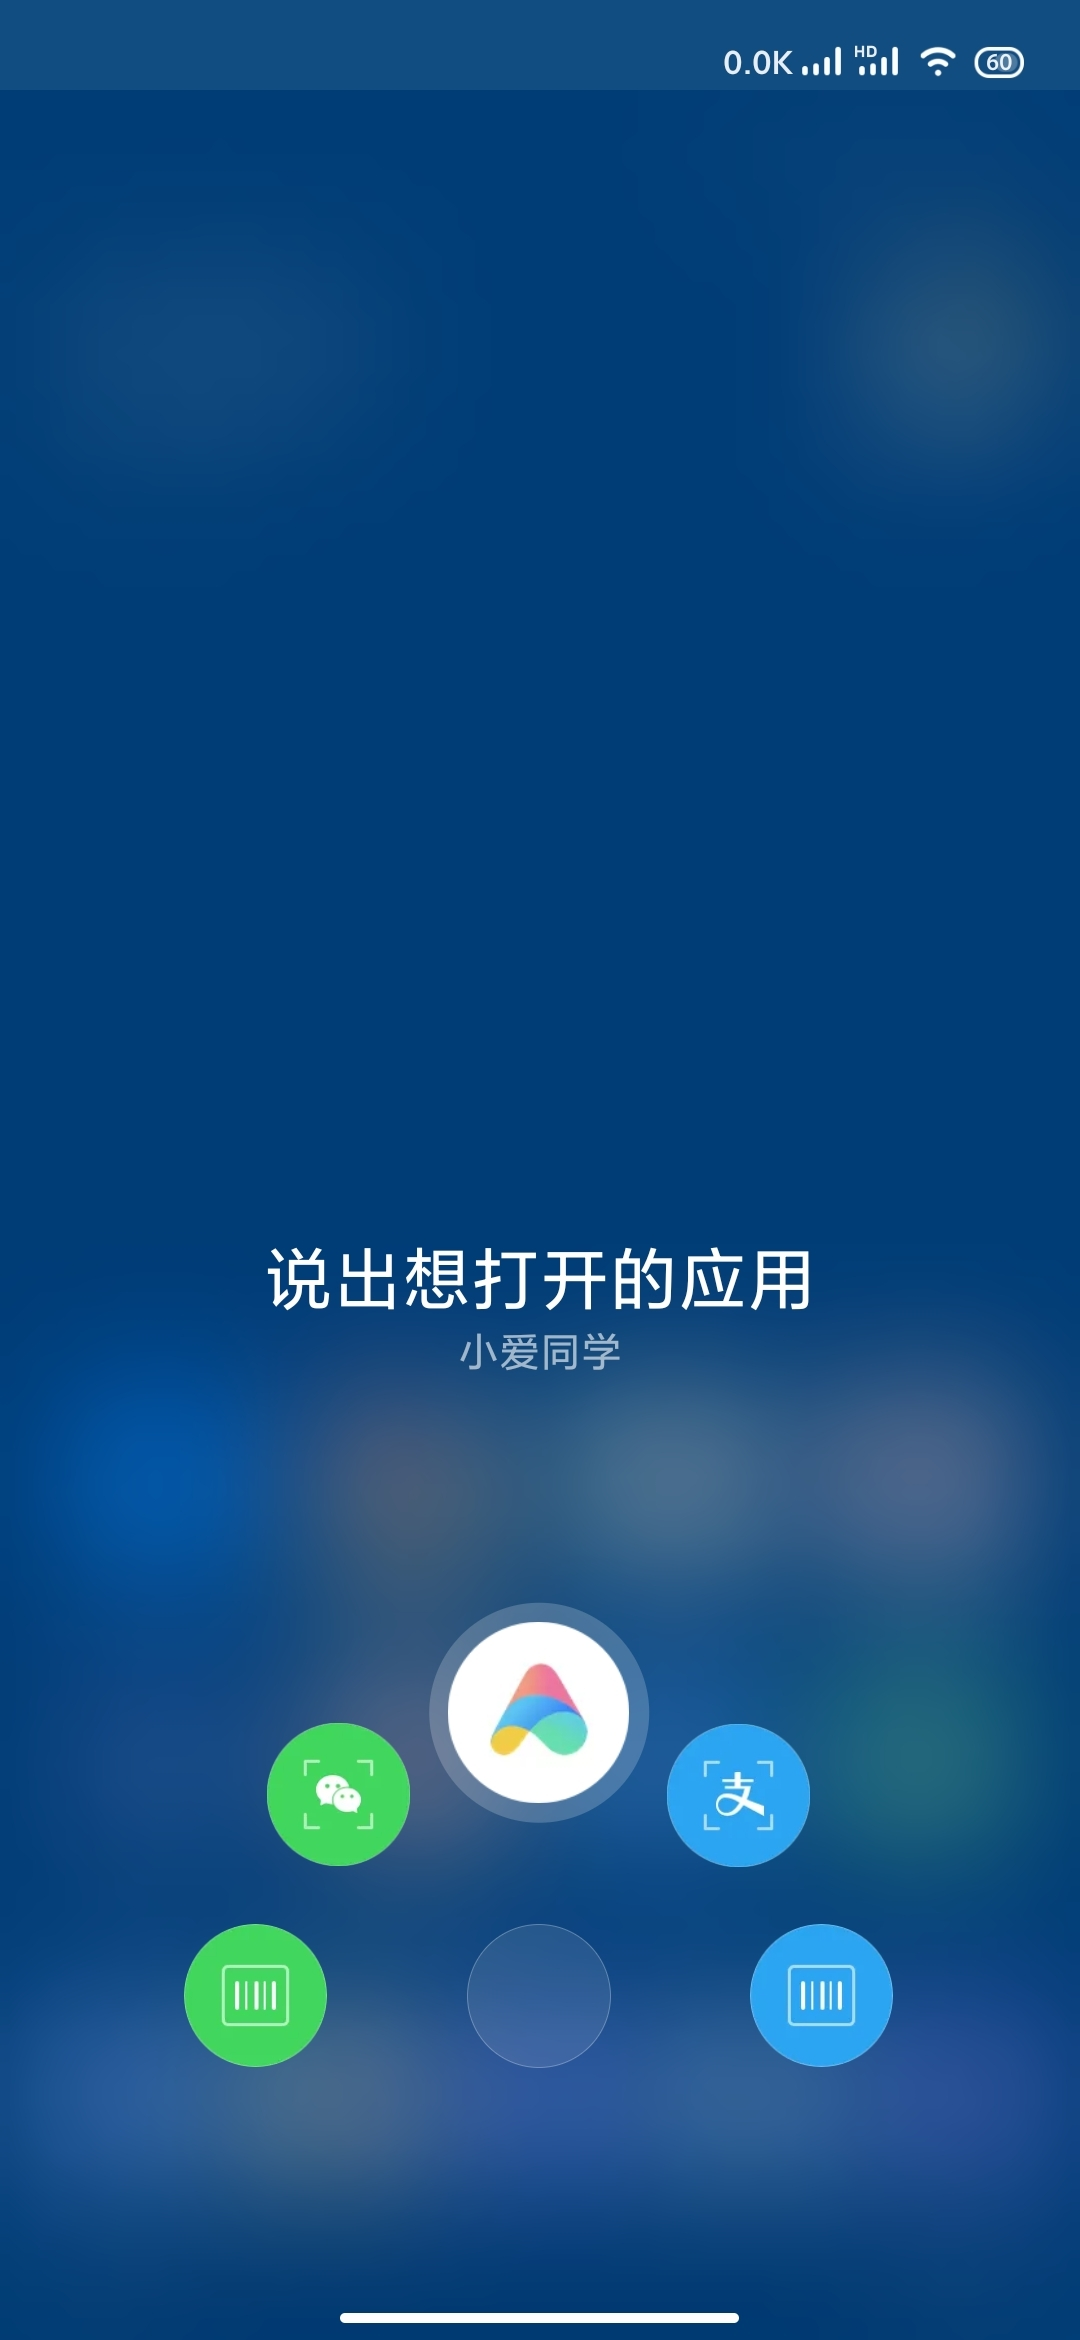 Screenshot_2020-11-03-10-55-39-541_com.miui.home.jpg